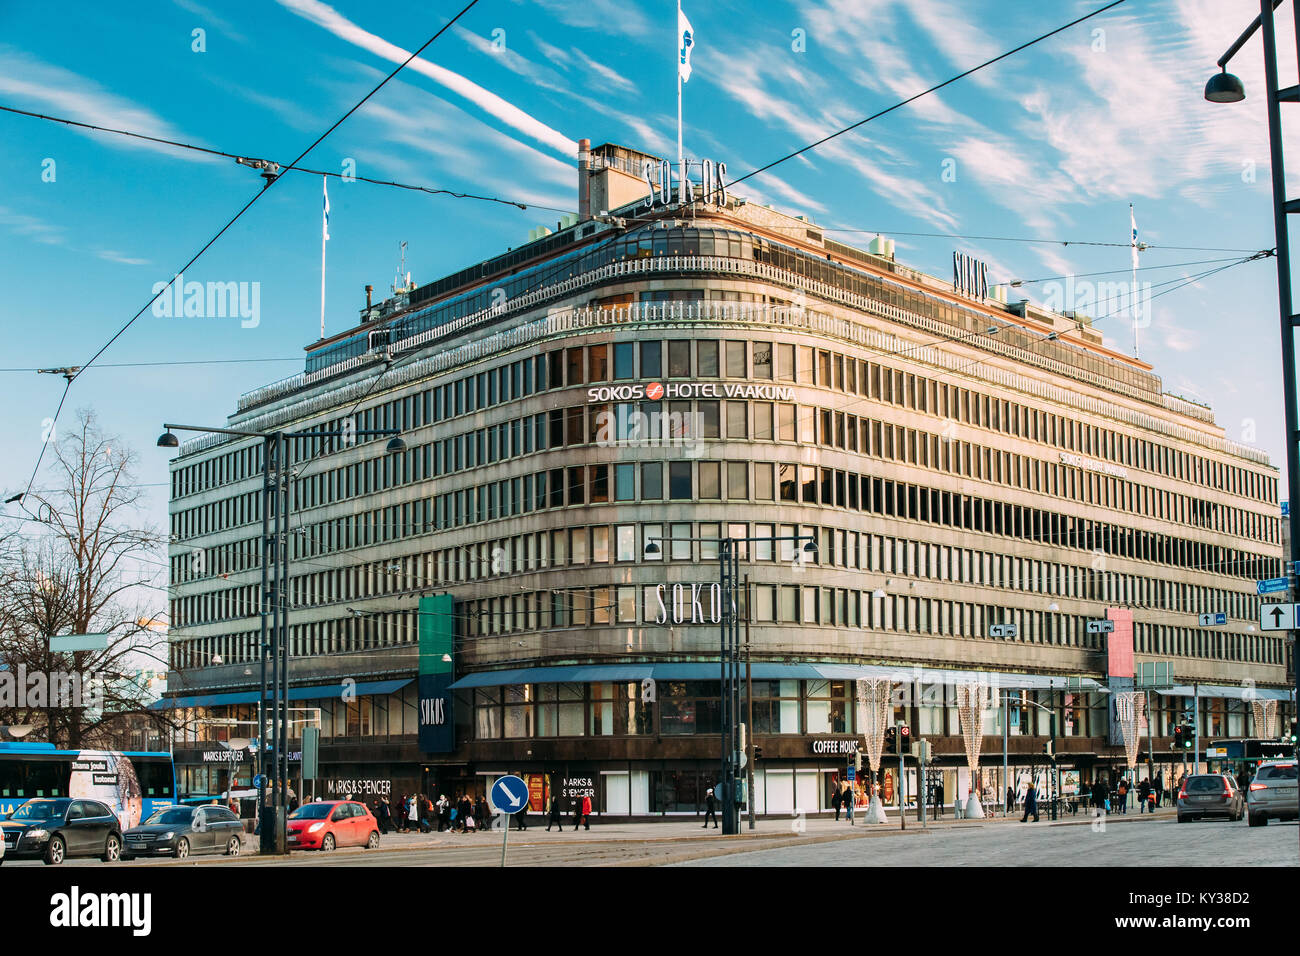 Helsinki, Finland - December 10, 2016: View Of Original Sokos Hotel In Winter Sunny Day - Stock Image